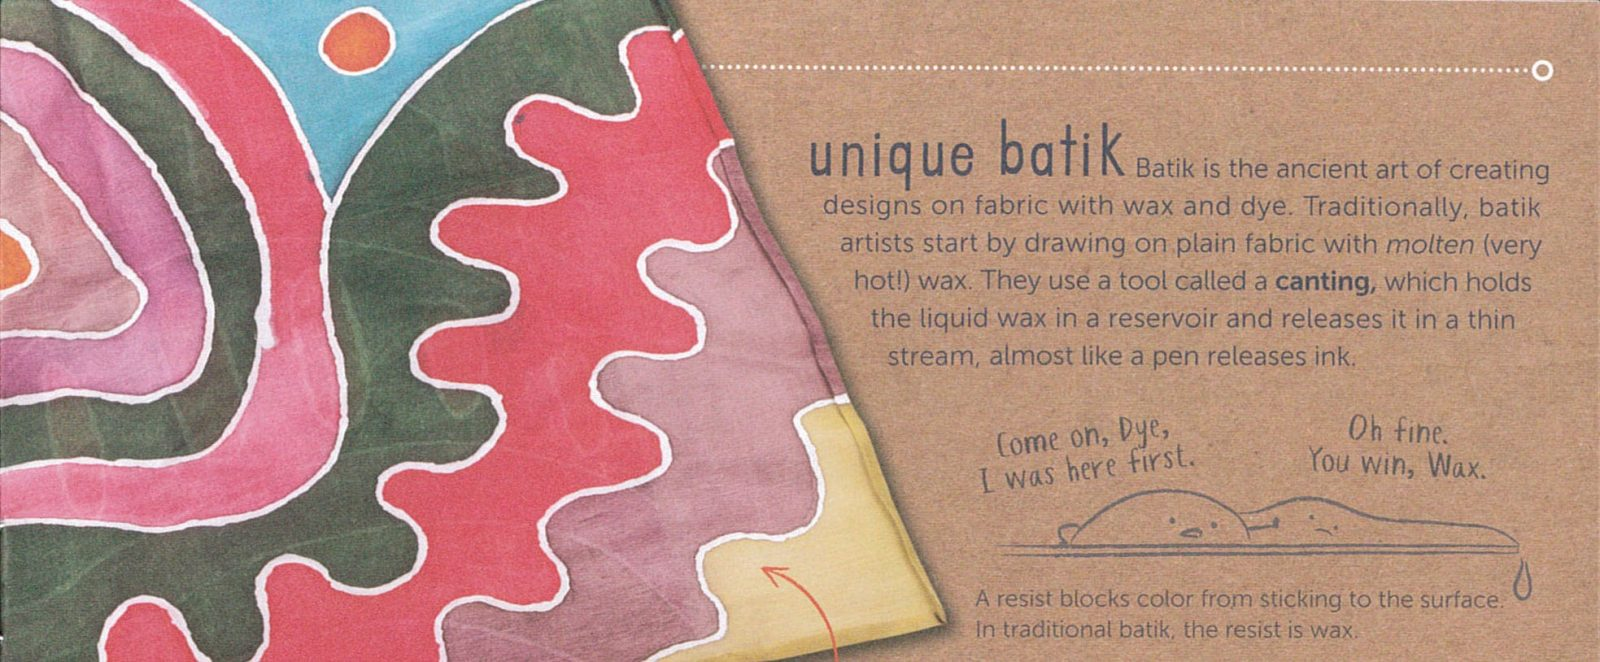 A brief history on the batik technique - Doodle Crate